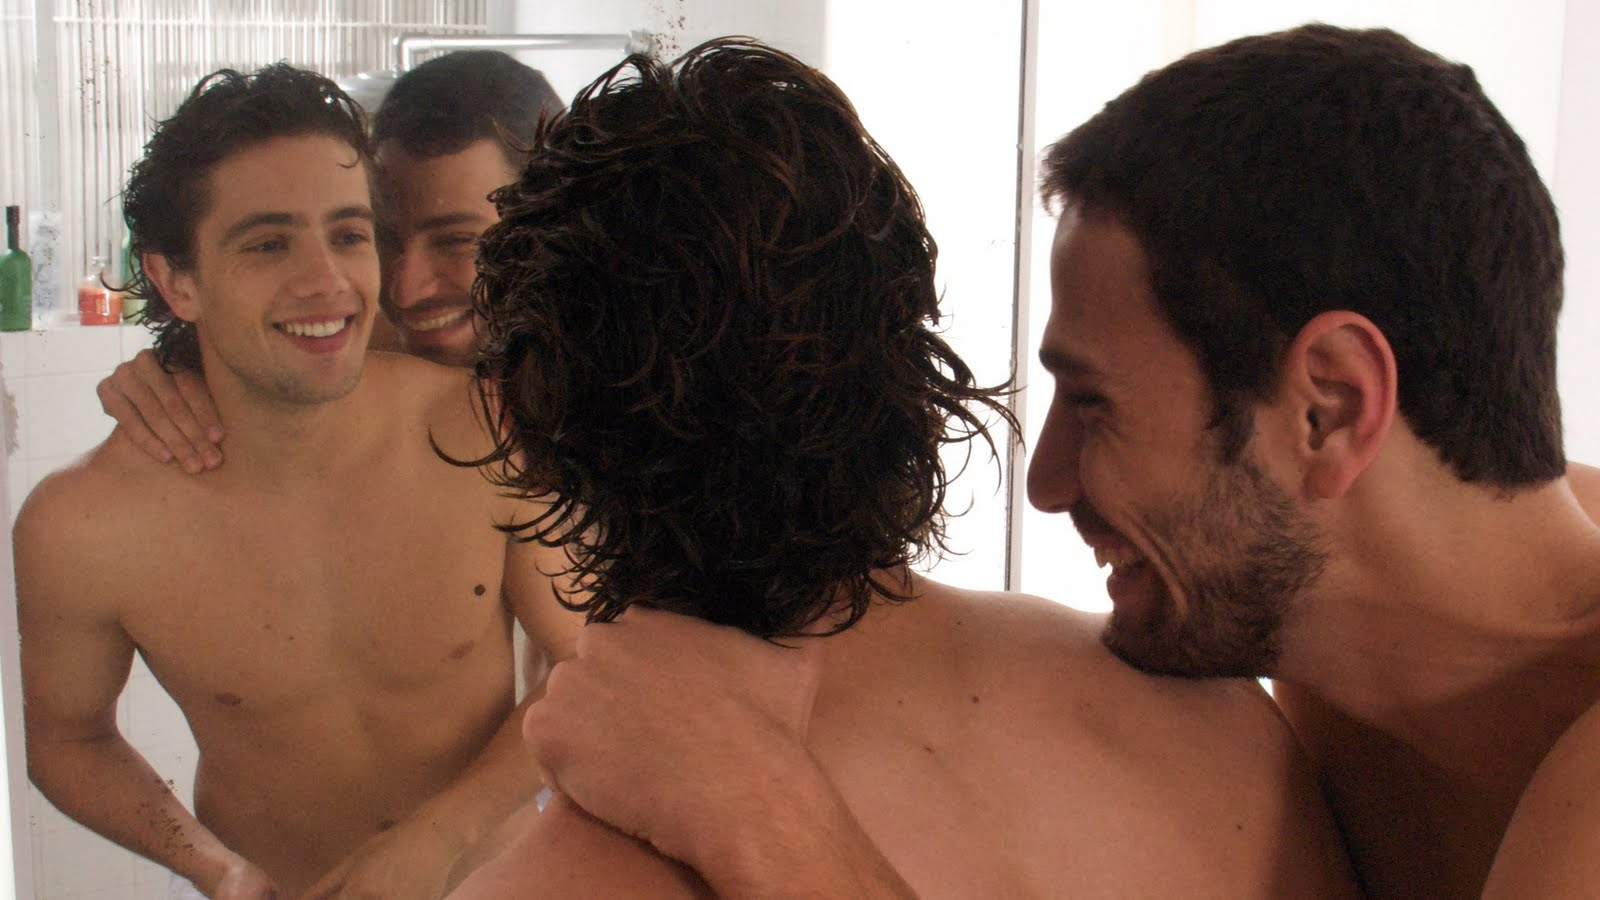 Another Gay Movie Ending 9